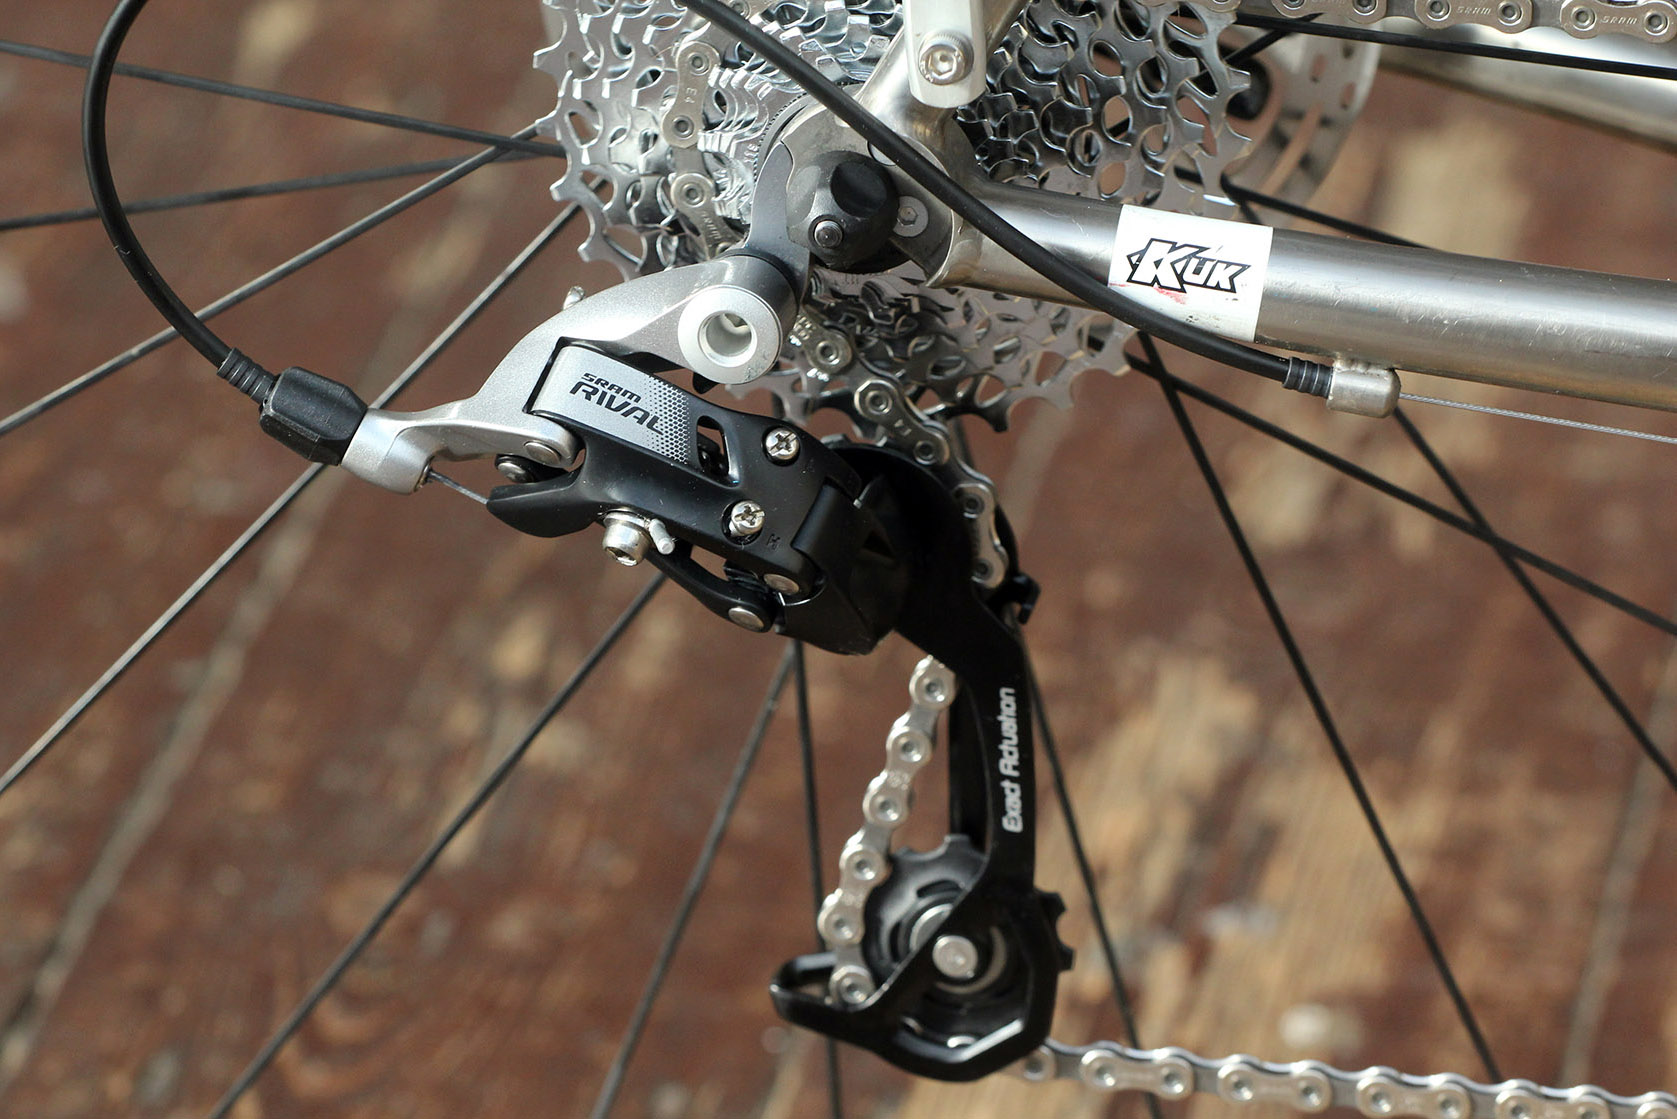 Head to head: Shimano 105 v SRAM Rival 22 — how do the two cheapest